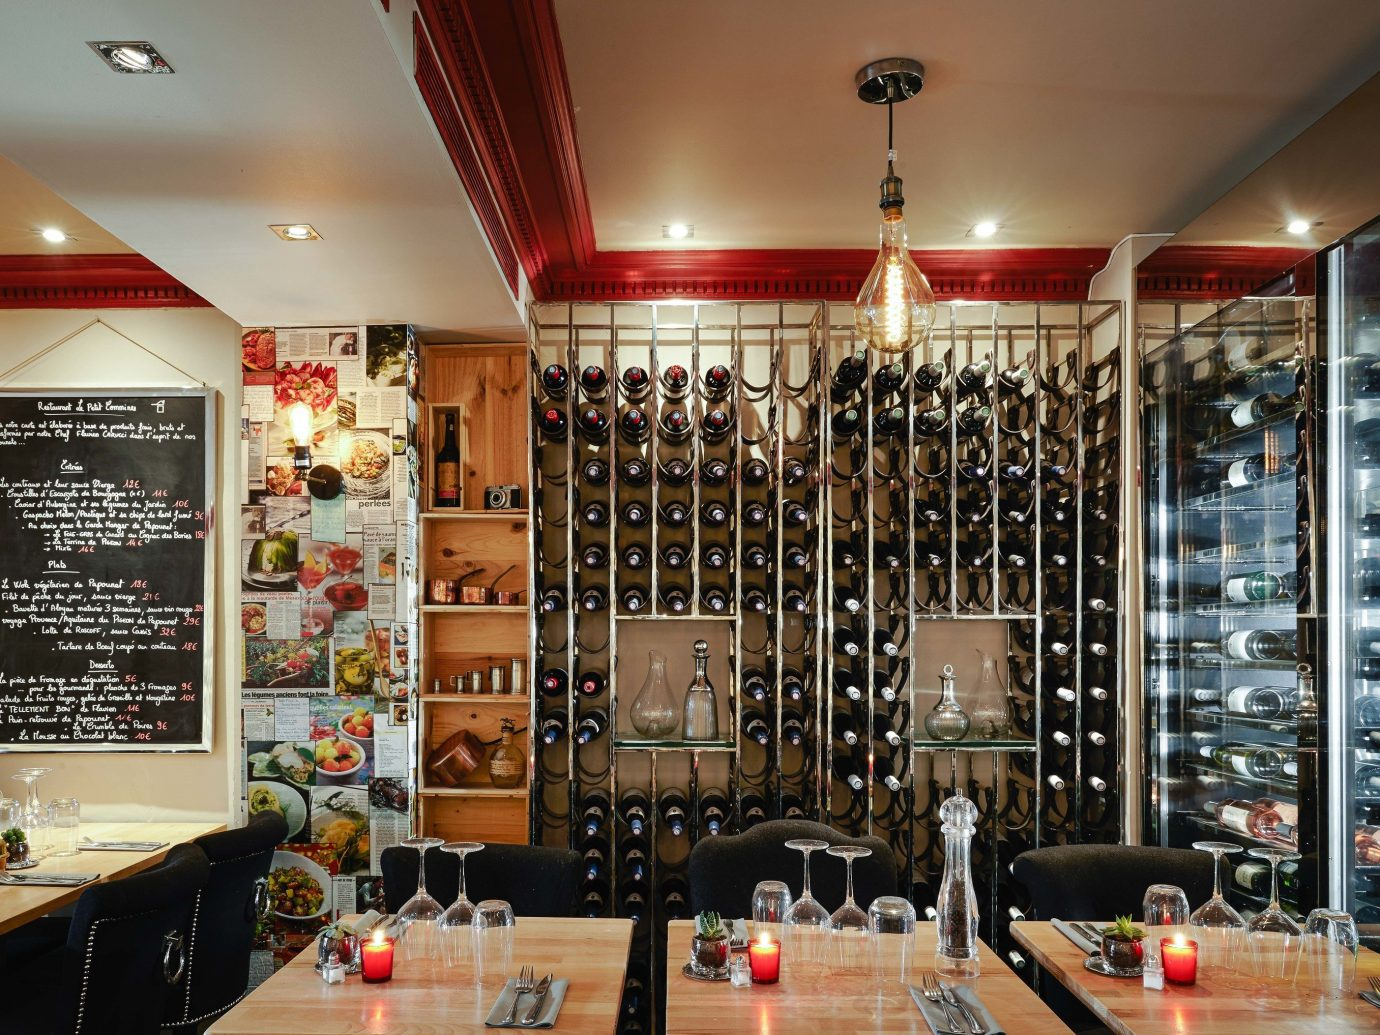 Food + Drink Romance indoor ceiling room interior design Living liquor store restaurant wine cellar furniture area decorated cluttered